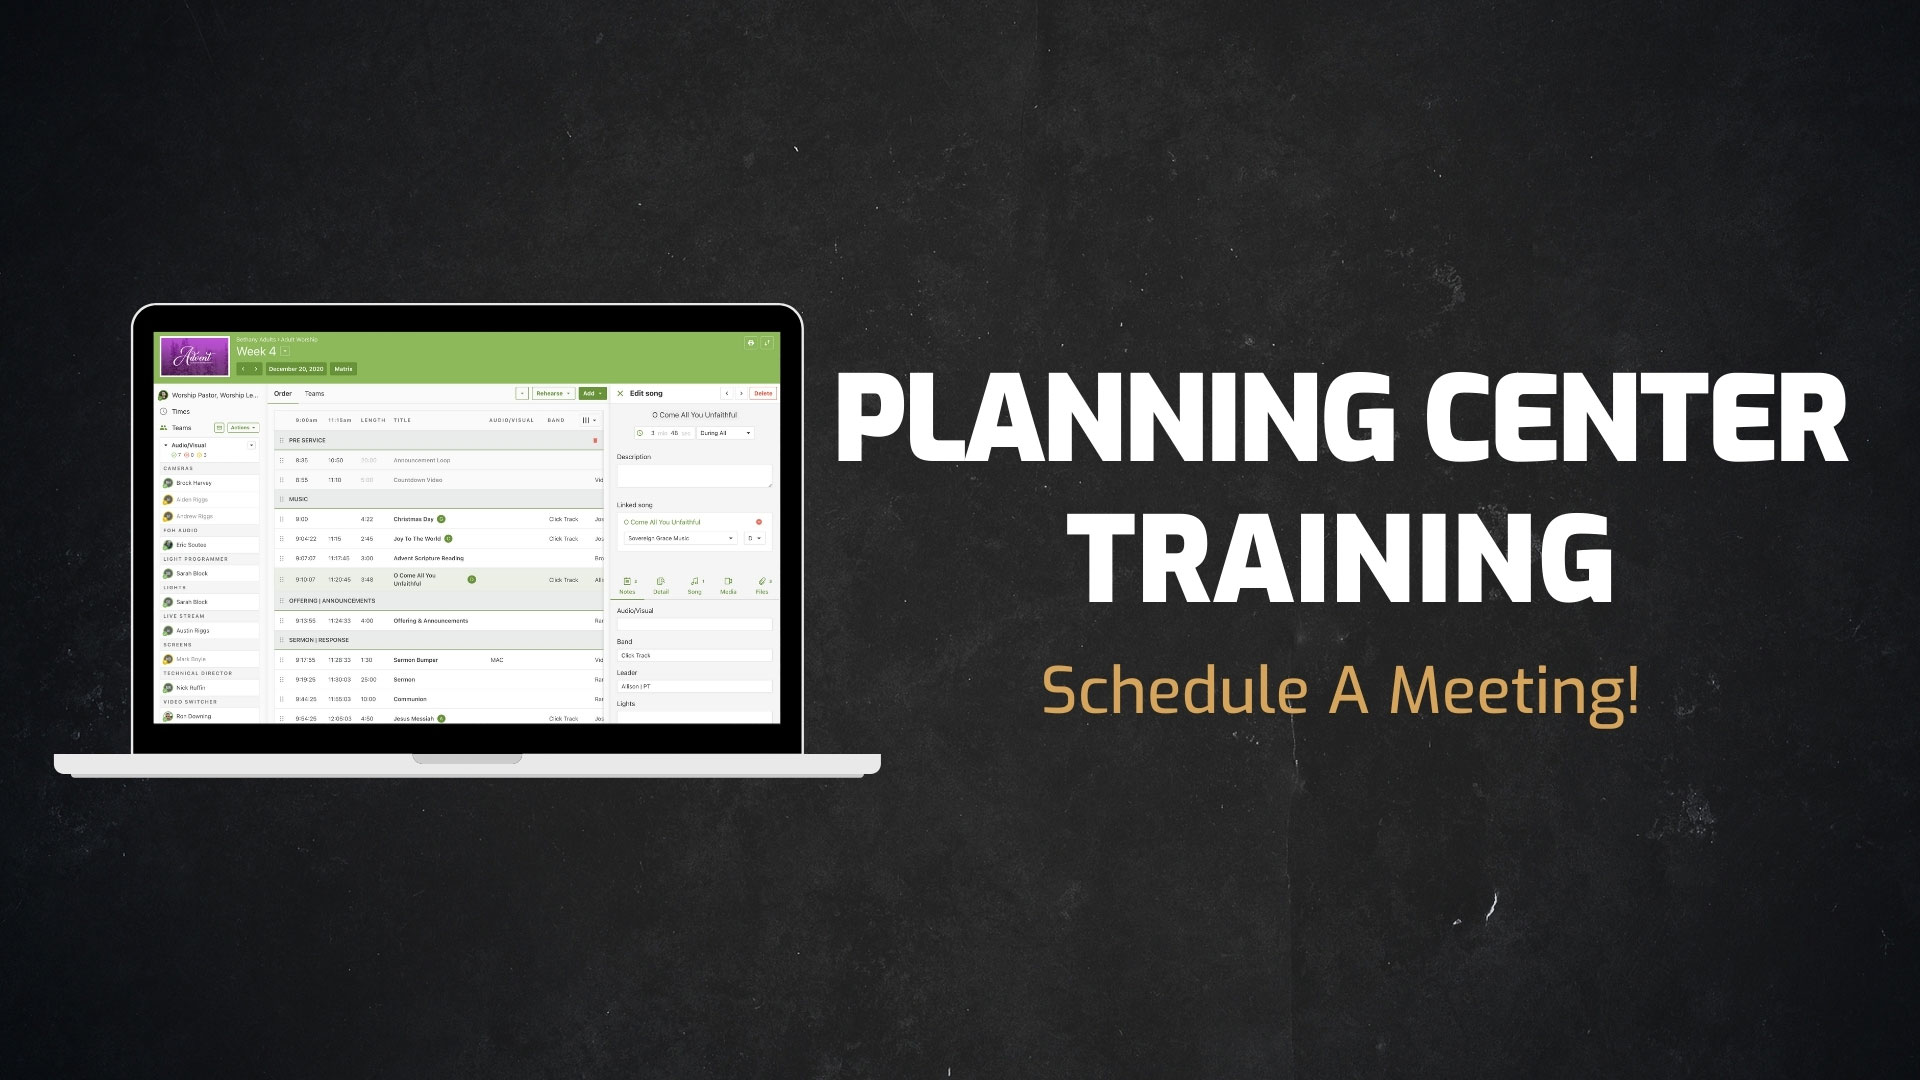 Services We Offer - Planning Center Training